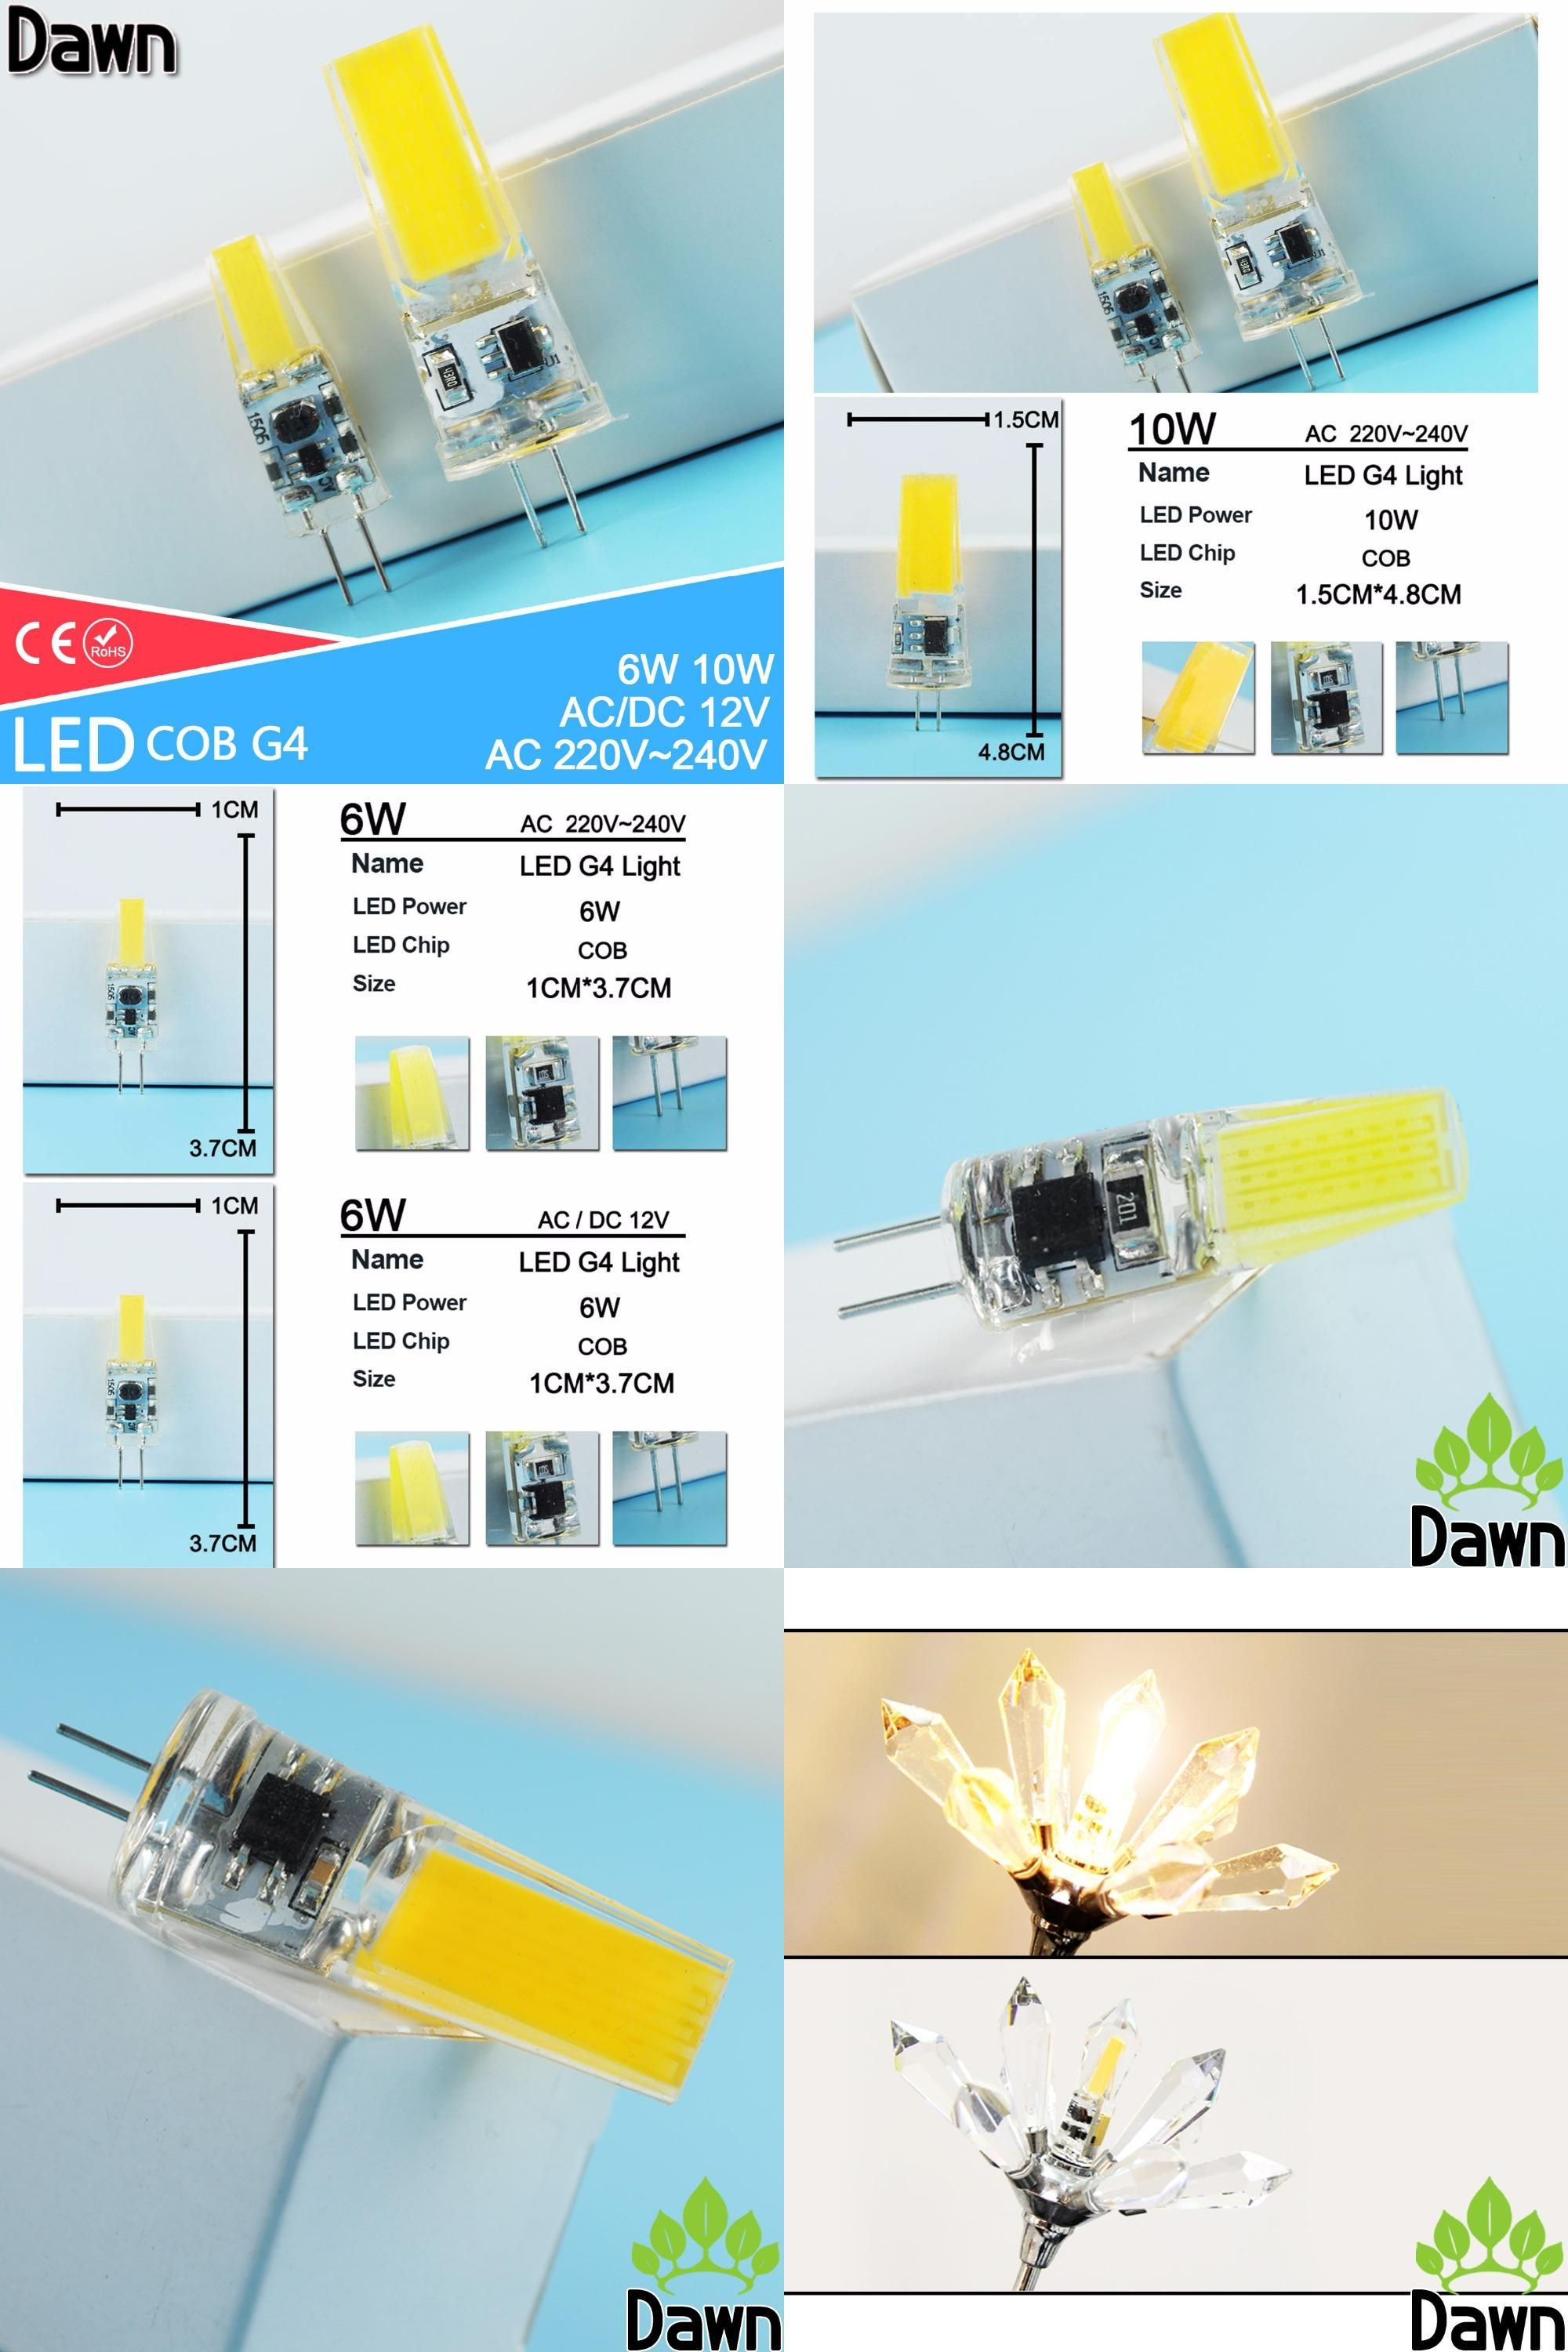 Visit To Buy G4 Cob Led Bulb Acdc 12v 6w Ac220v 6w 10w Led G4 Lamp Crystal Led Light Bulb Lampada Lampara Bombilla Ampoule Led Home Light Adver Led Light Bulb